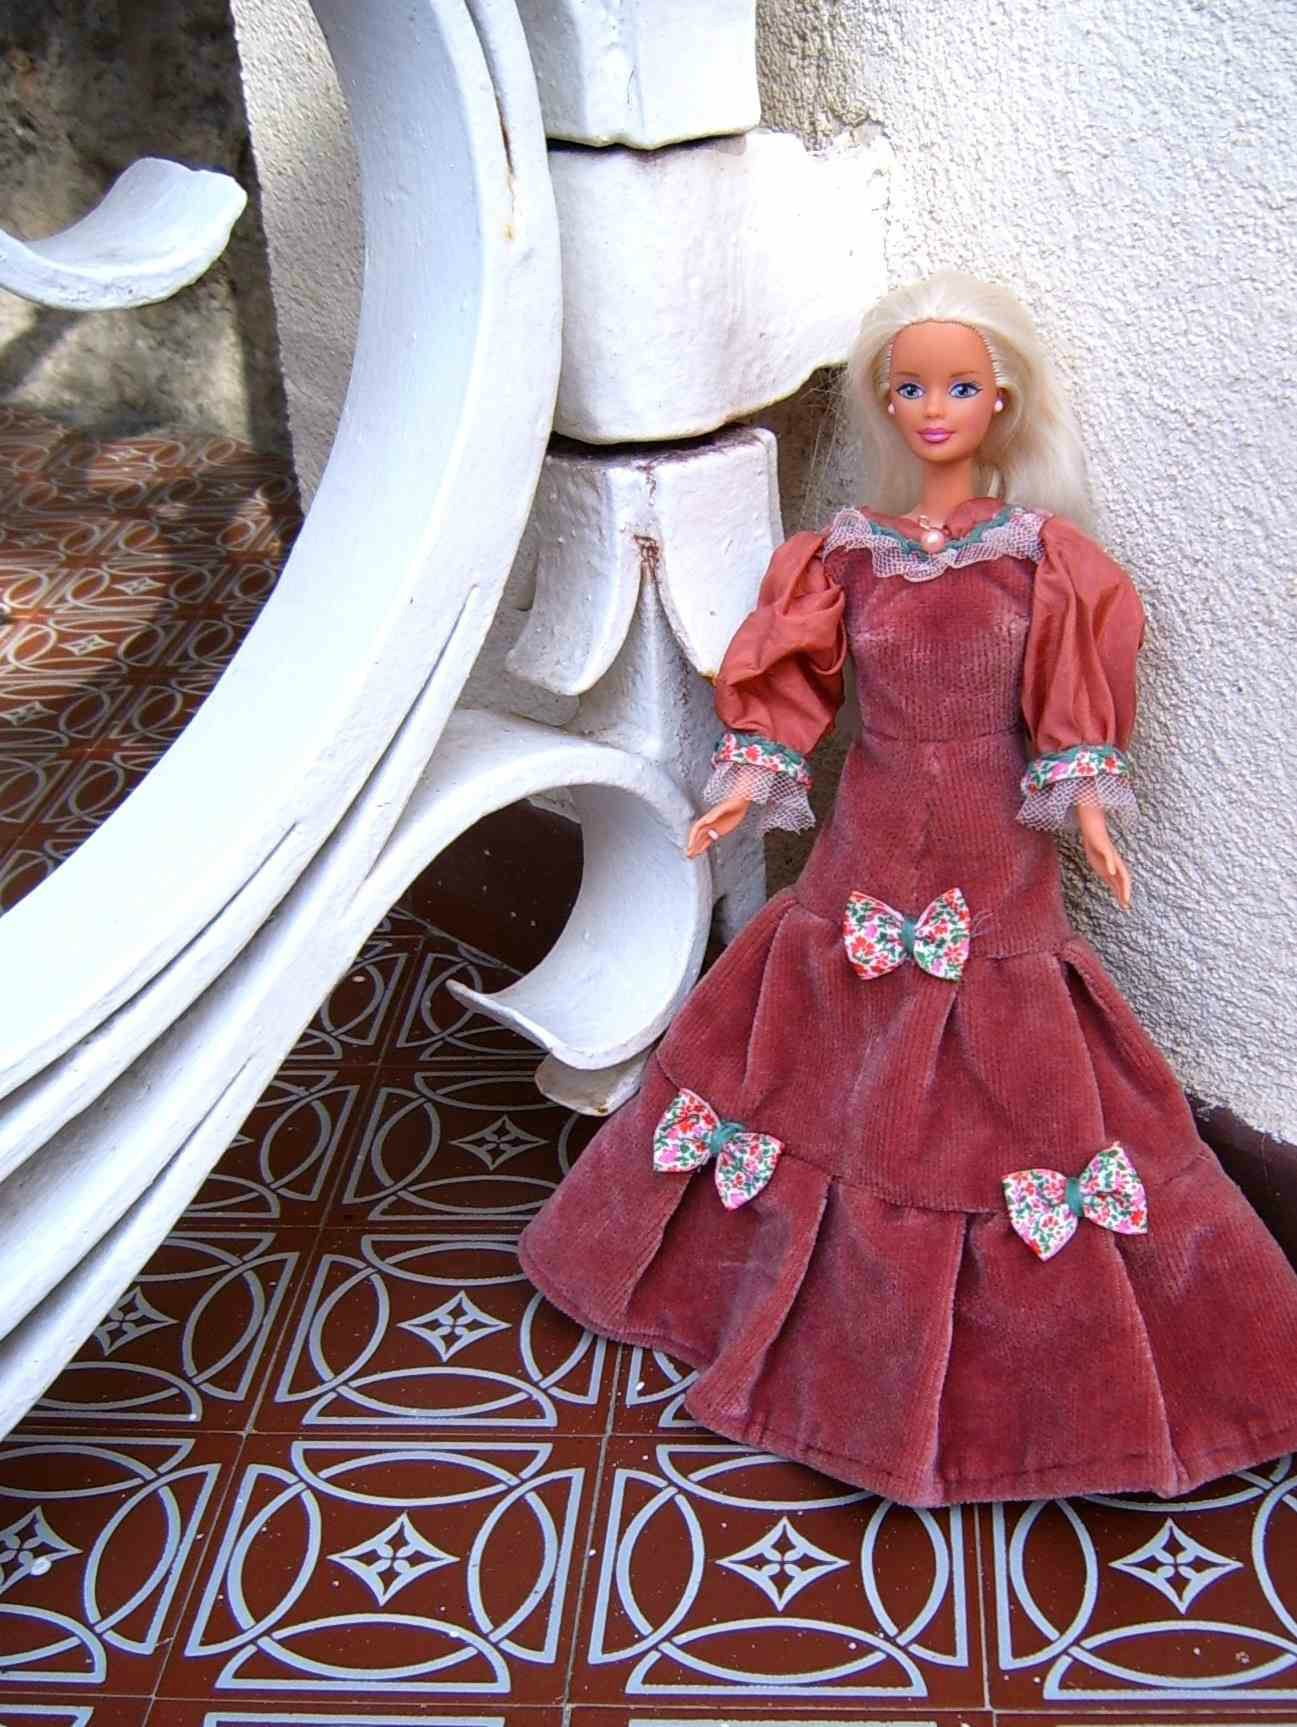 Recyclage Textile Barbie Robe Collection 19me Sicle